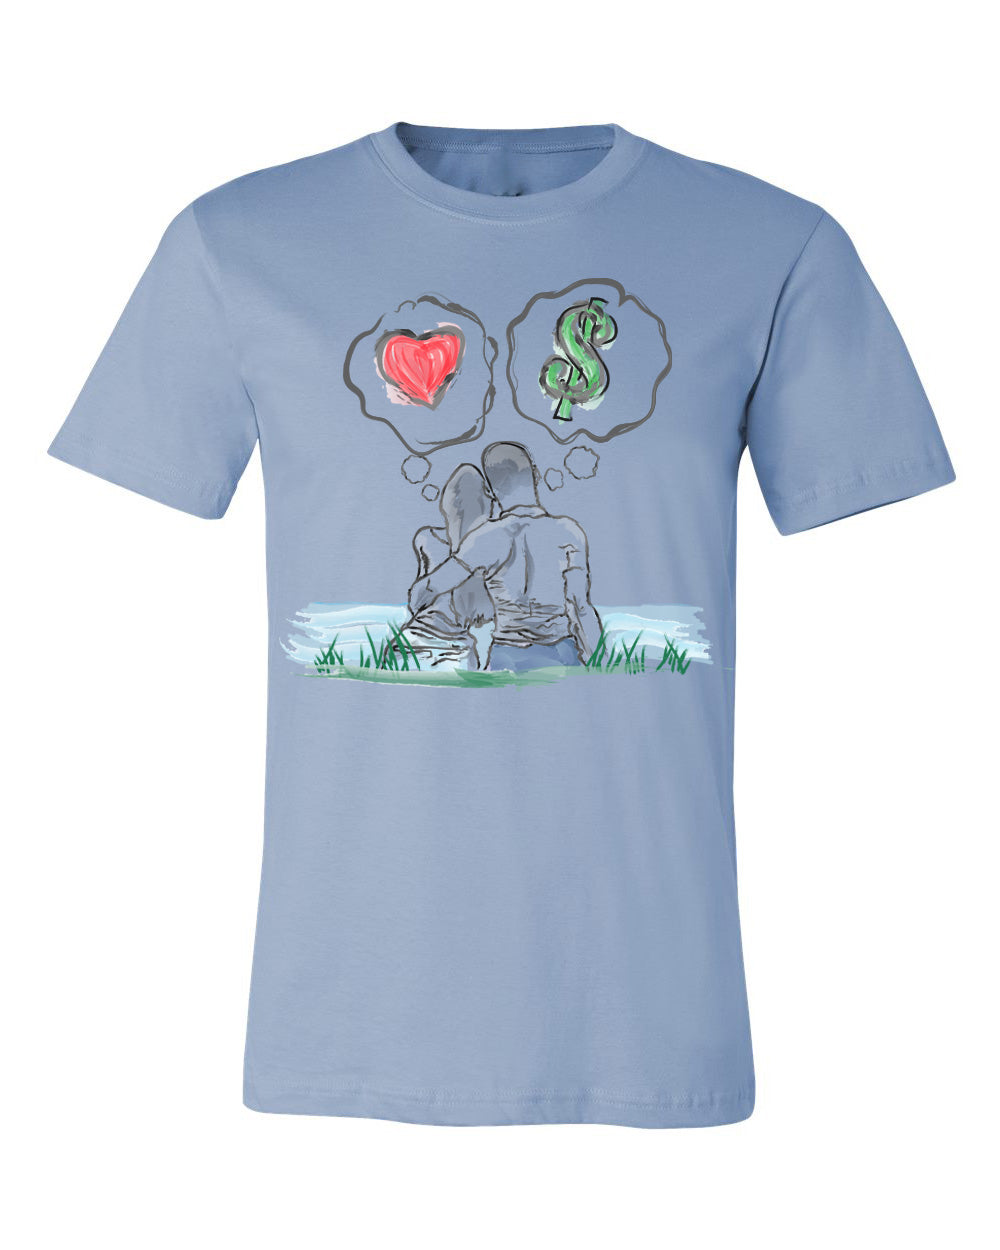 Guy Benson Collection Love Vs Money T-Shirt -Baby Blue